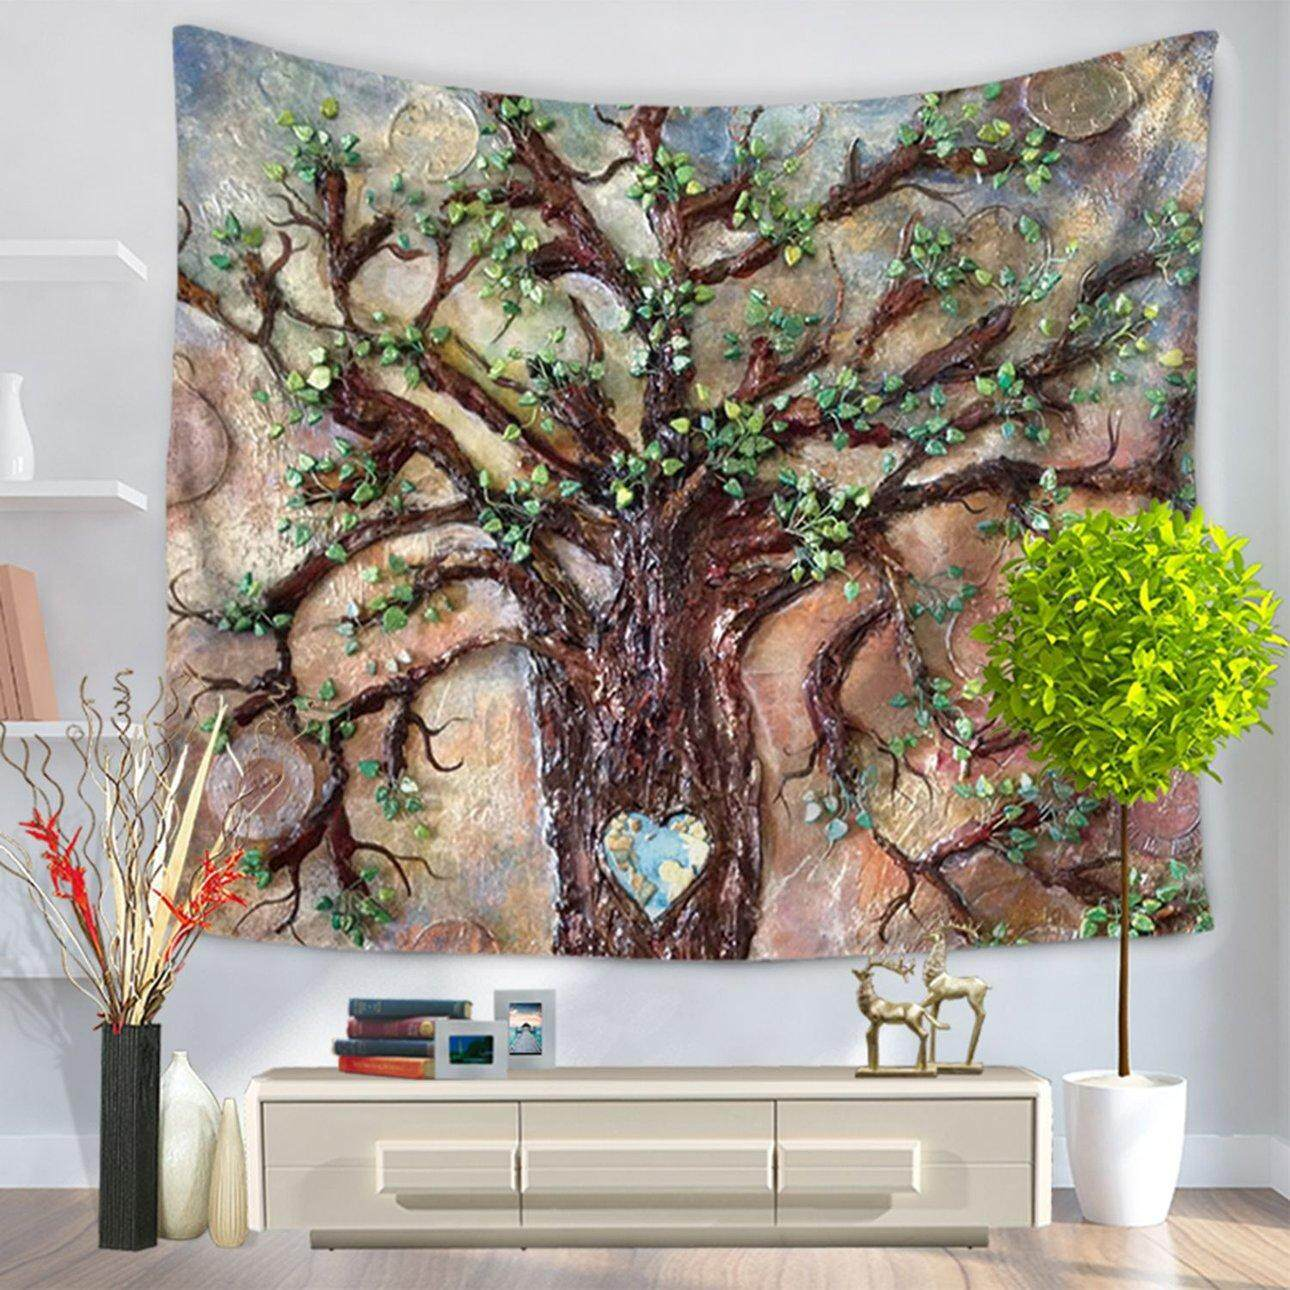 Hot Sales Handicrafts Tree Wall Hanging Tapestry Cotton Wool Ethnic Style Wall Decor